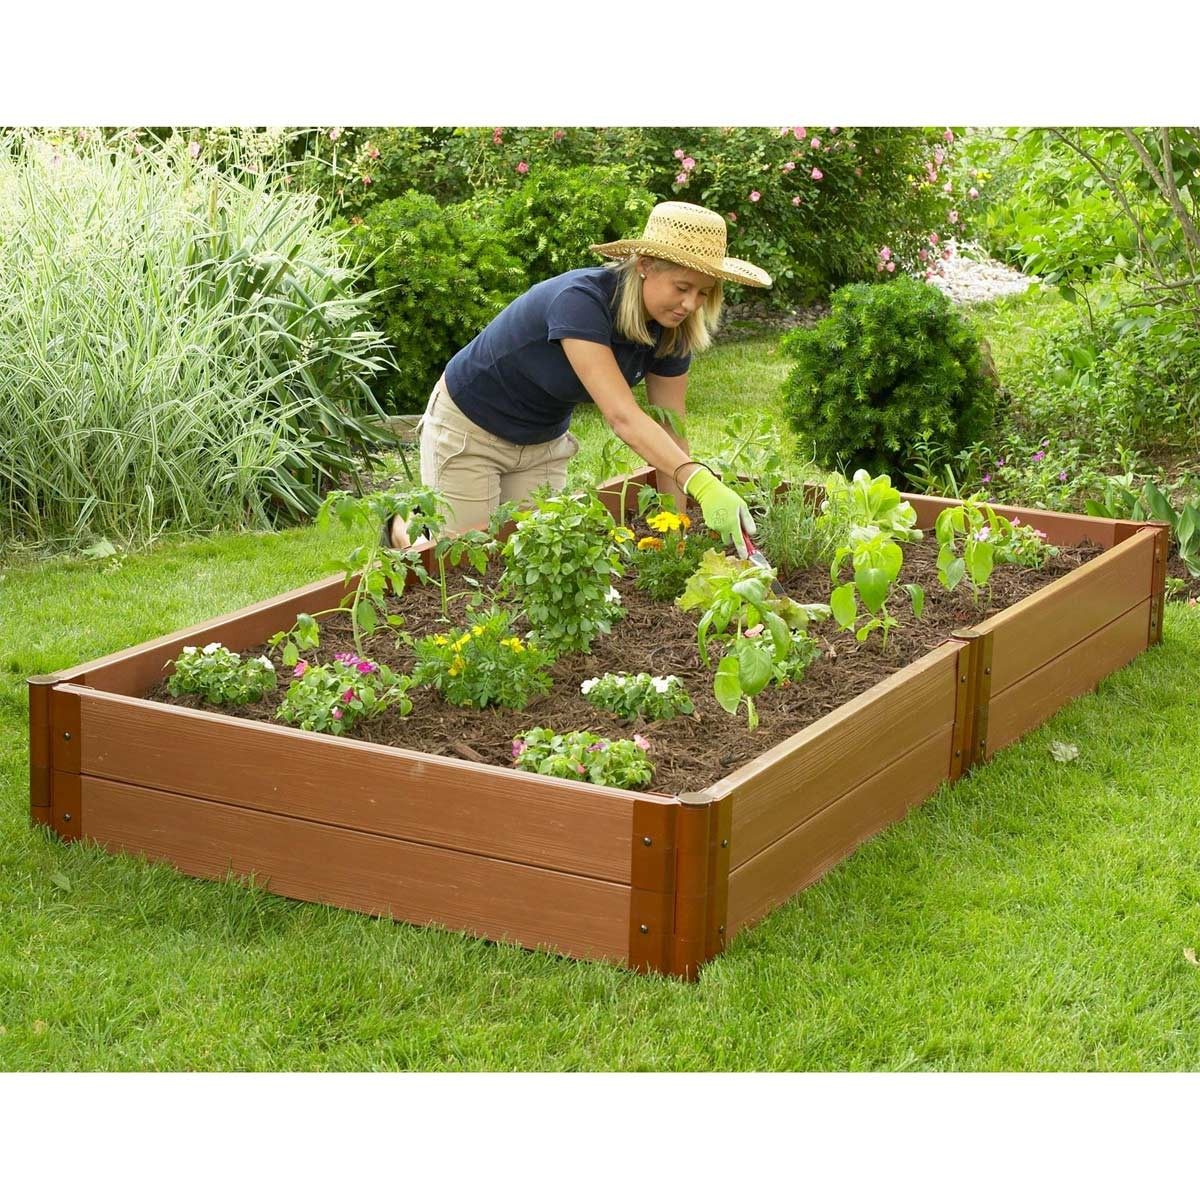 Raised Garden Beds for Perth Homeowners - Benefits and Facts